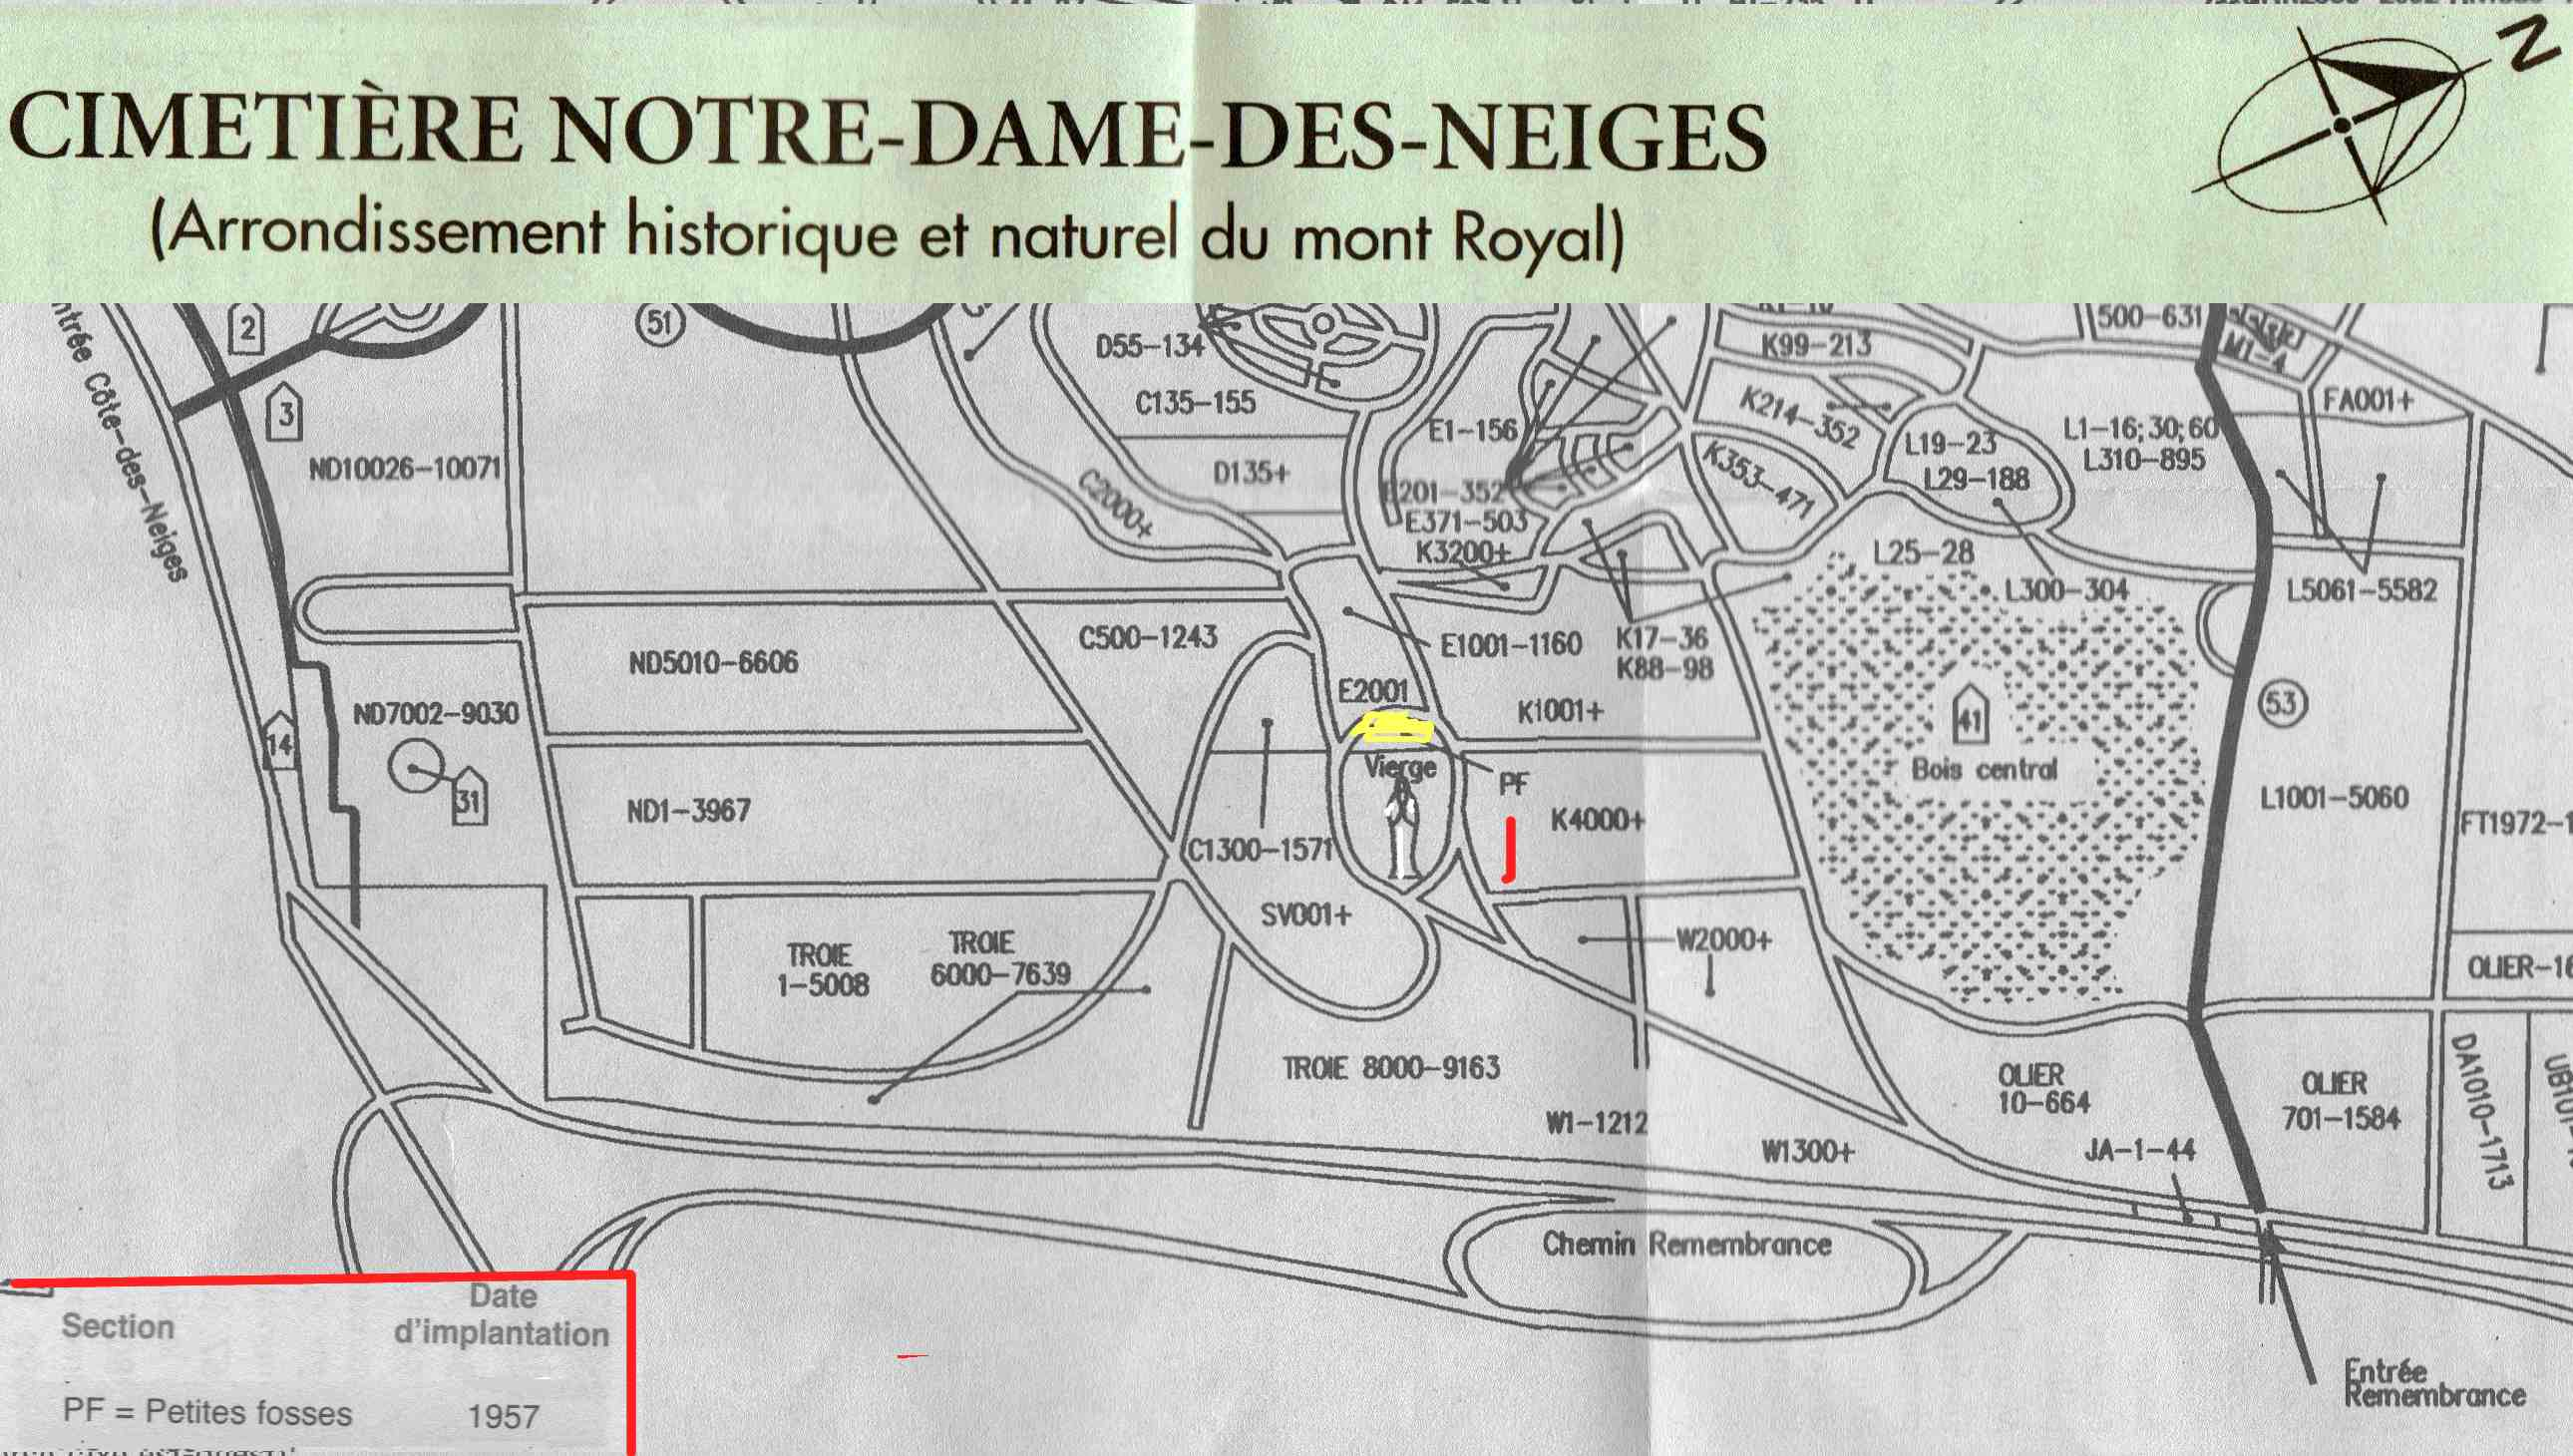 Partial Map of Notre-Dame-des-Neiges Cemetery Showing Area PF Reserved For Small Children